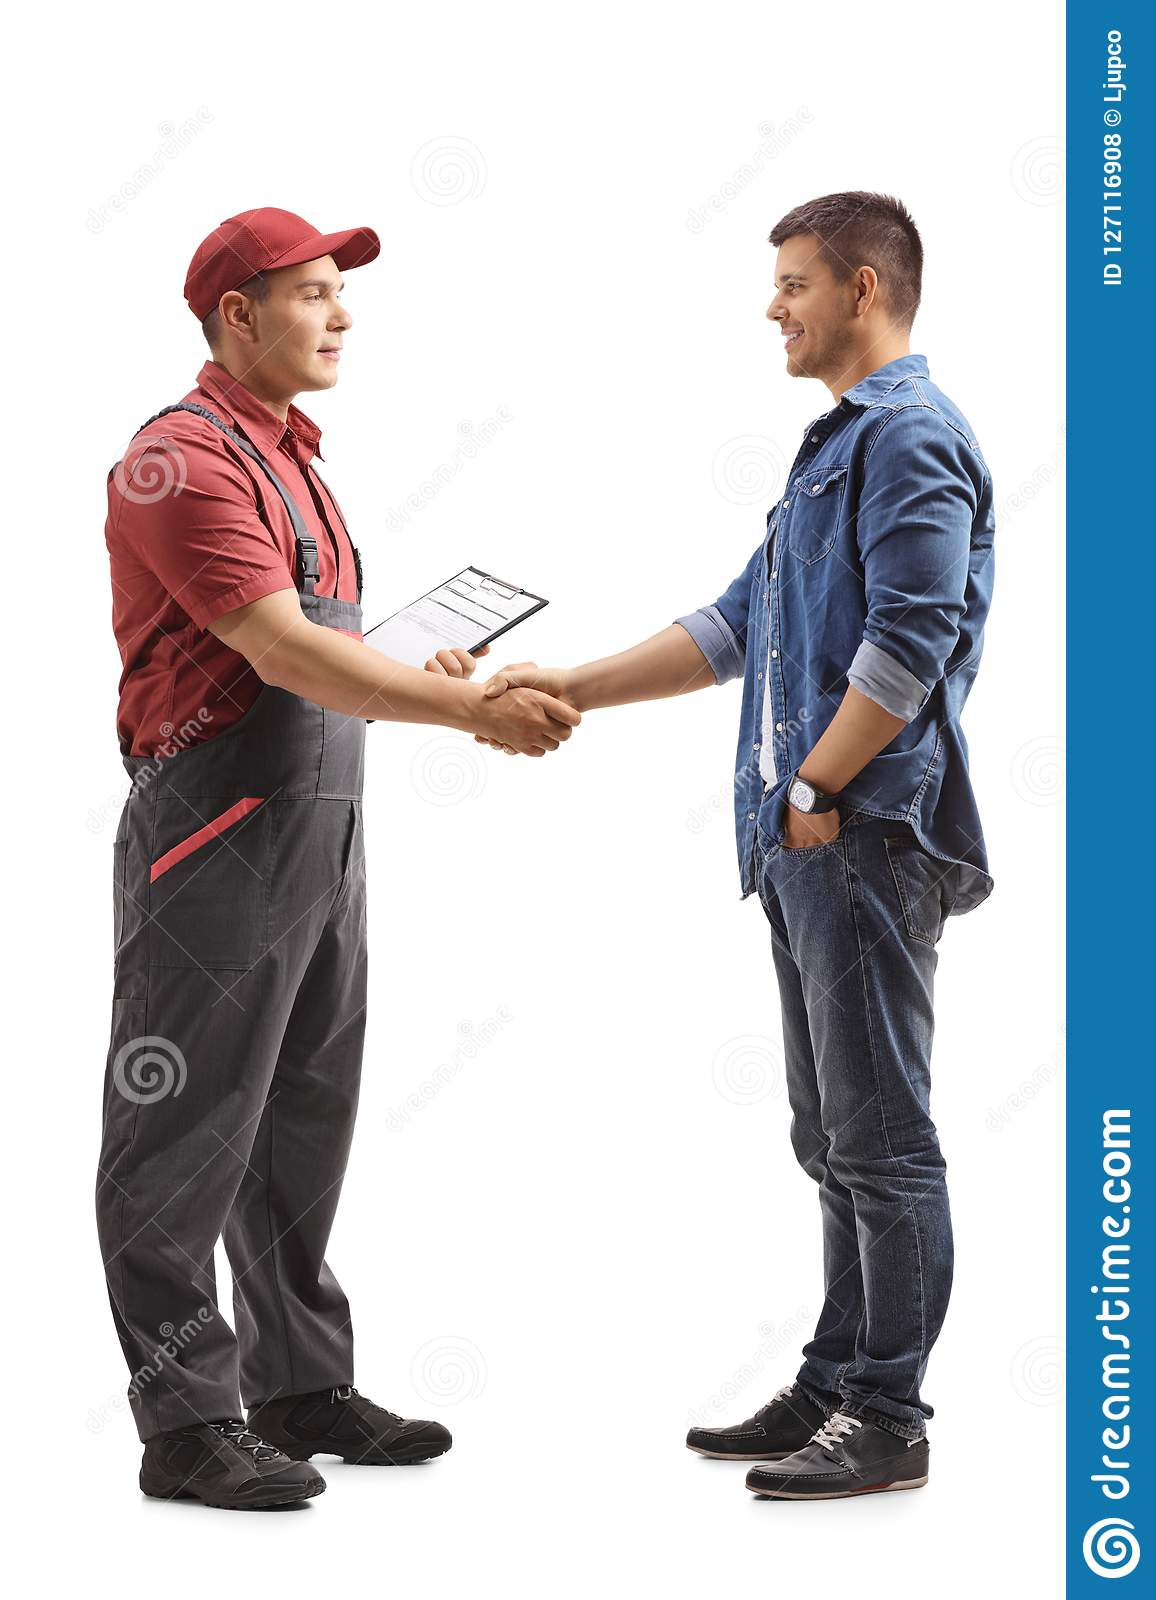 Mover shaking hands with a young man